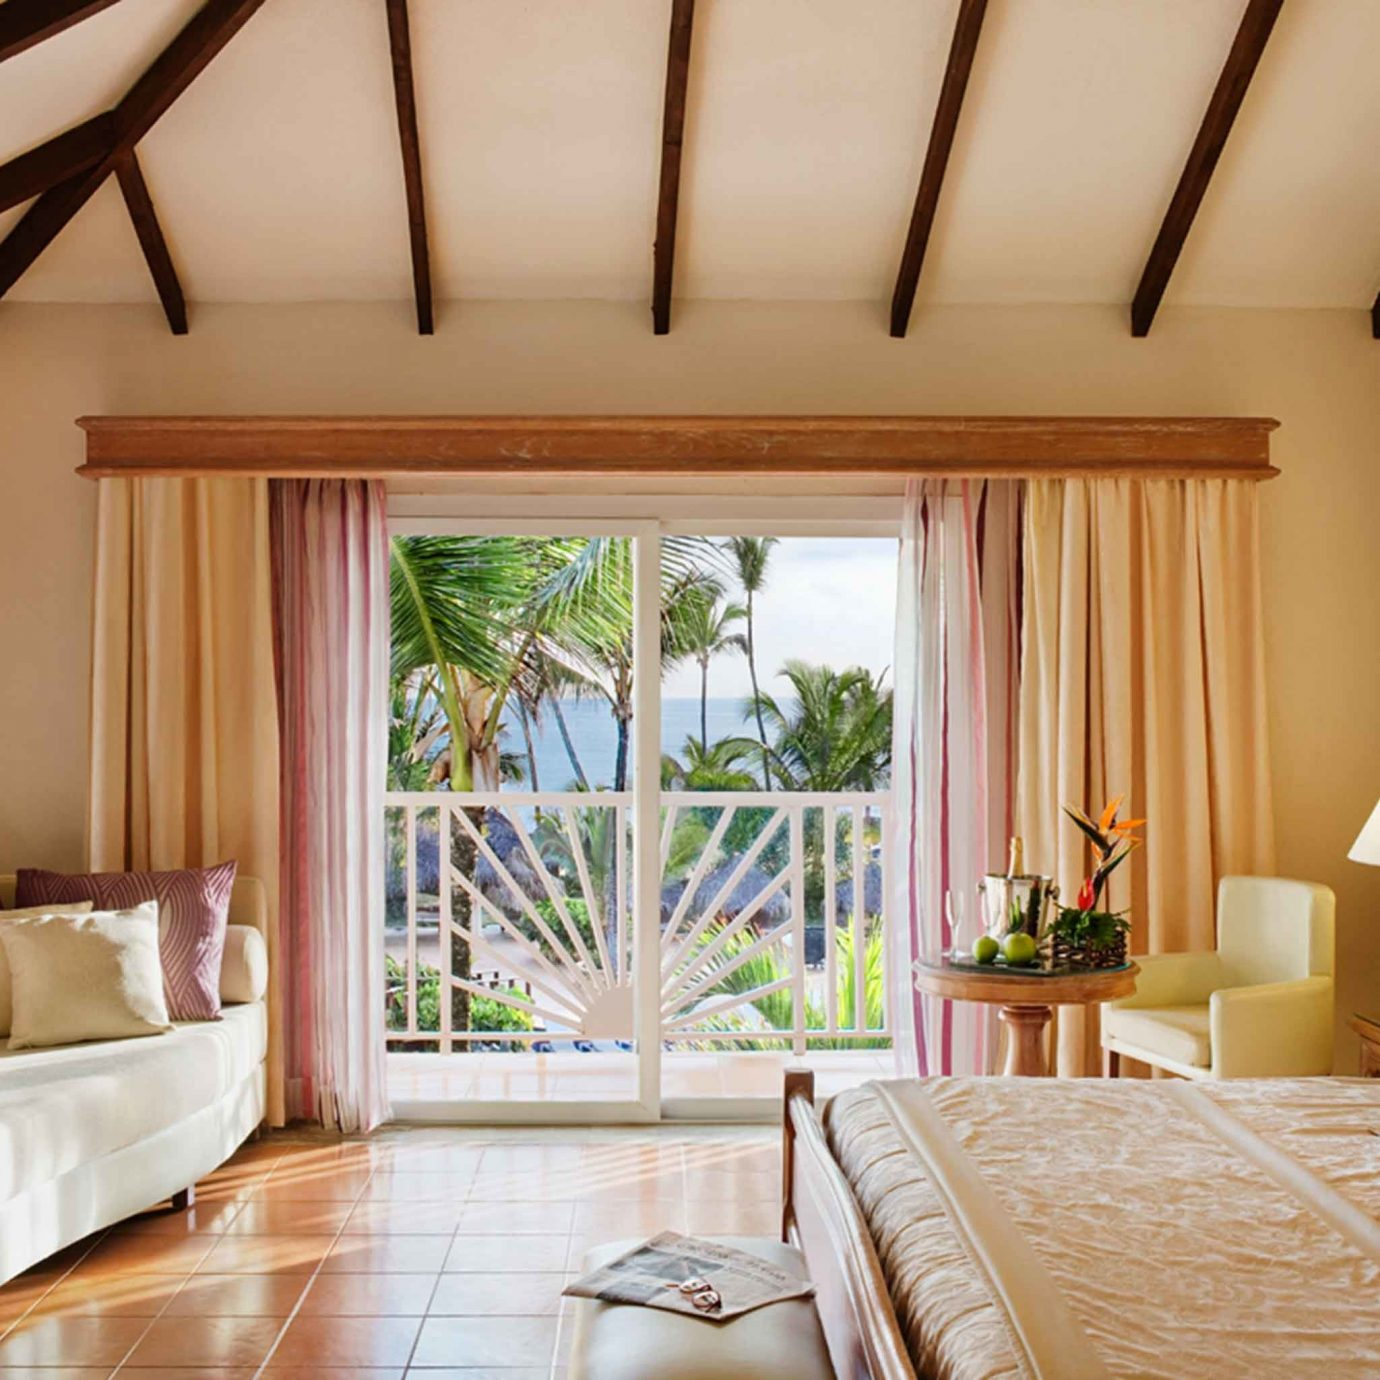 All-Inclusive Resorts Balcony Bedroom Hotels Romance Scenic views Suite sofa property living room cottage home farmhouse Villa nice colored